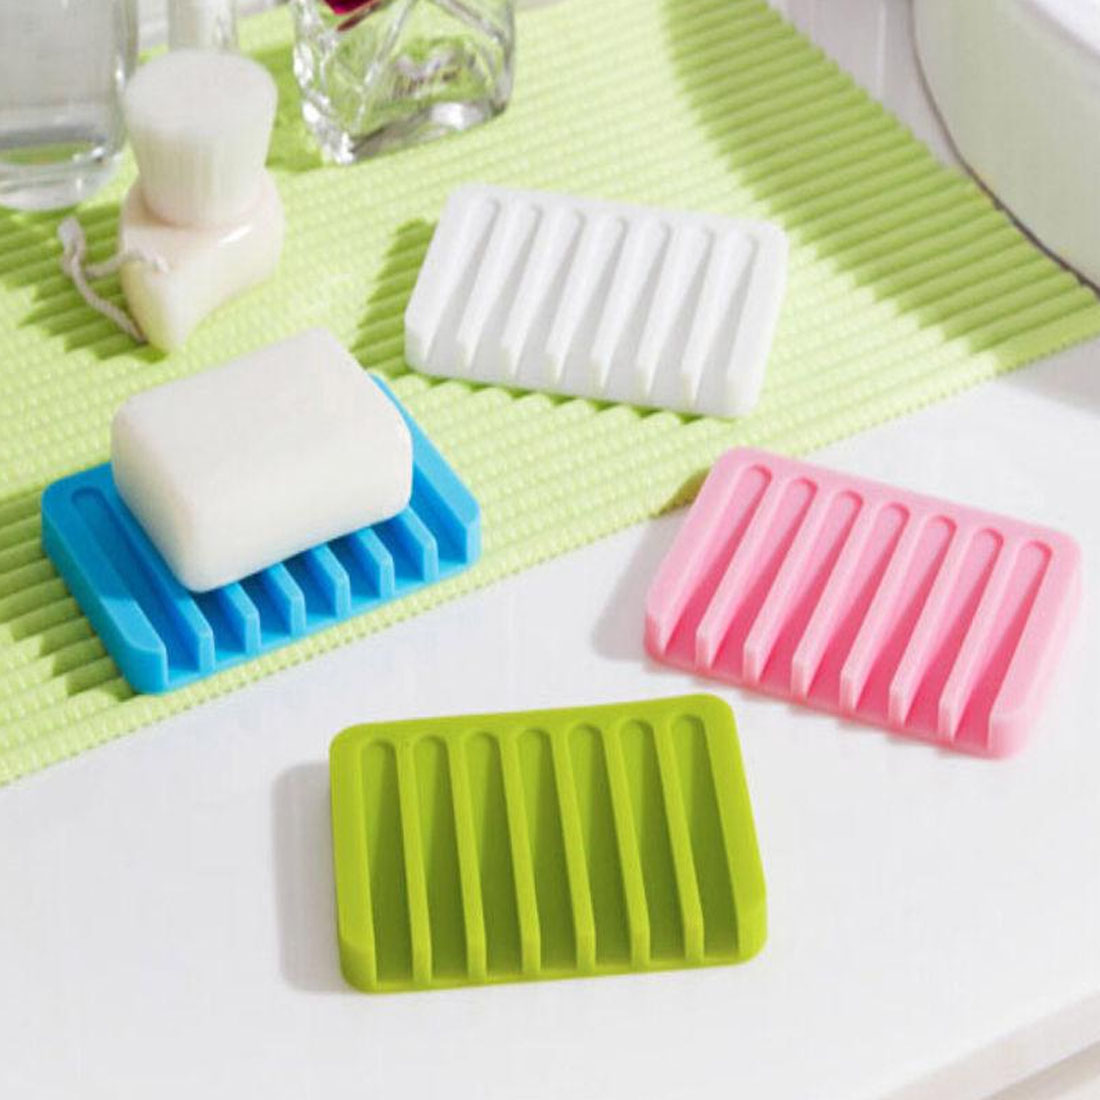 New 2019 Silicone Soap Dishes Kitchen Bathroom Flexible Soap Plate Tray Soap Box Non-Slip Overhead Design Drain Soap Box Holder